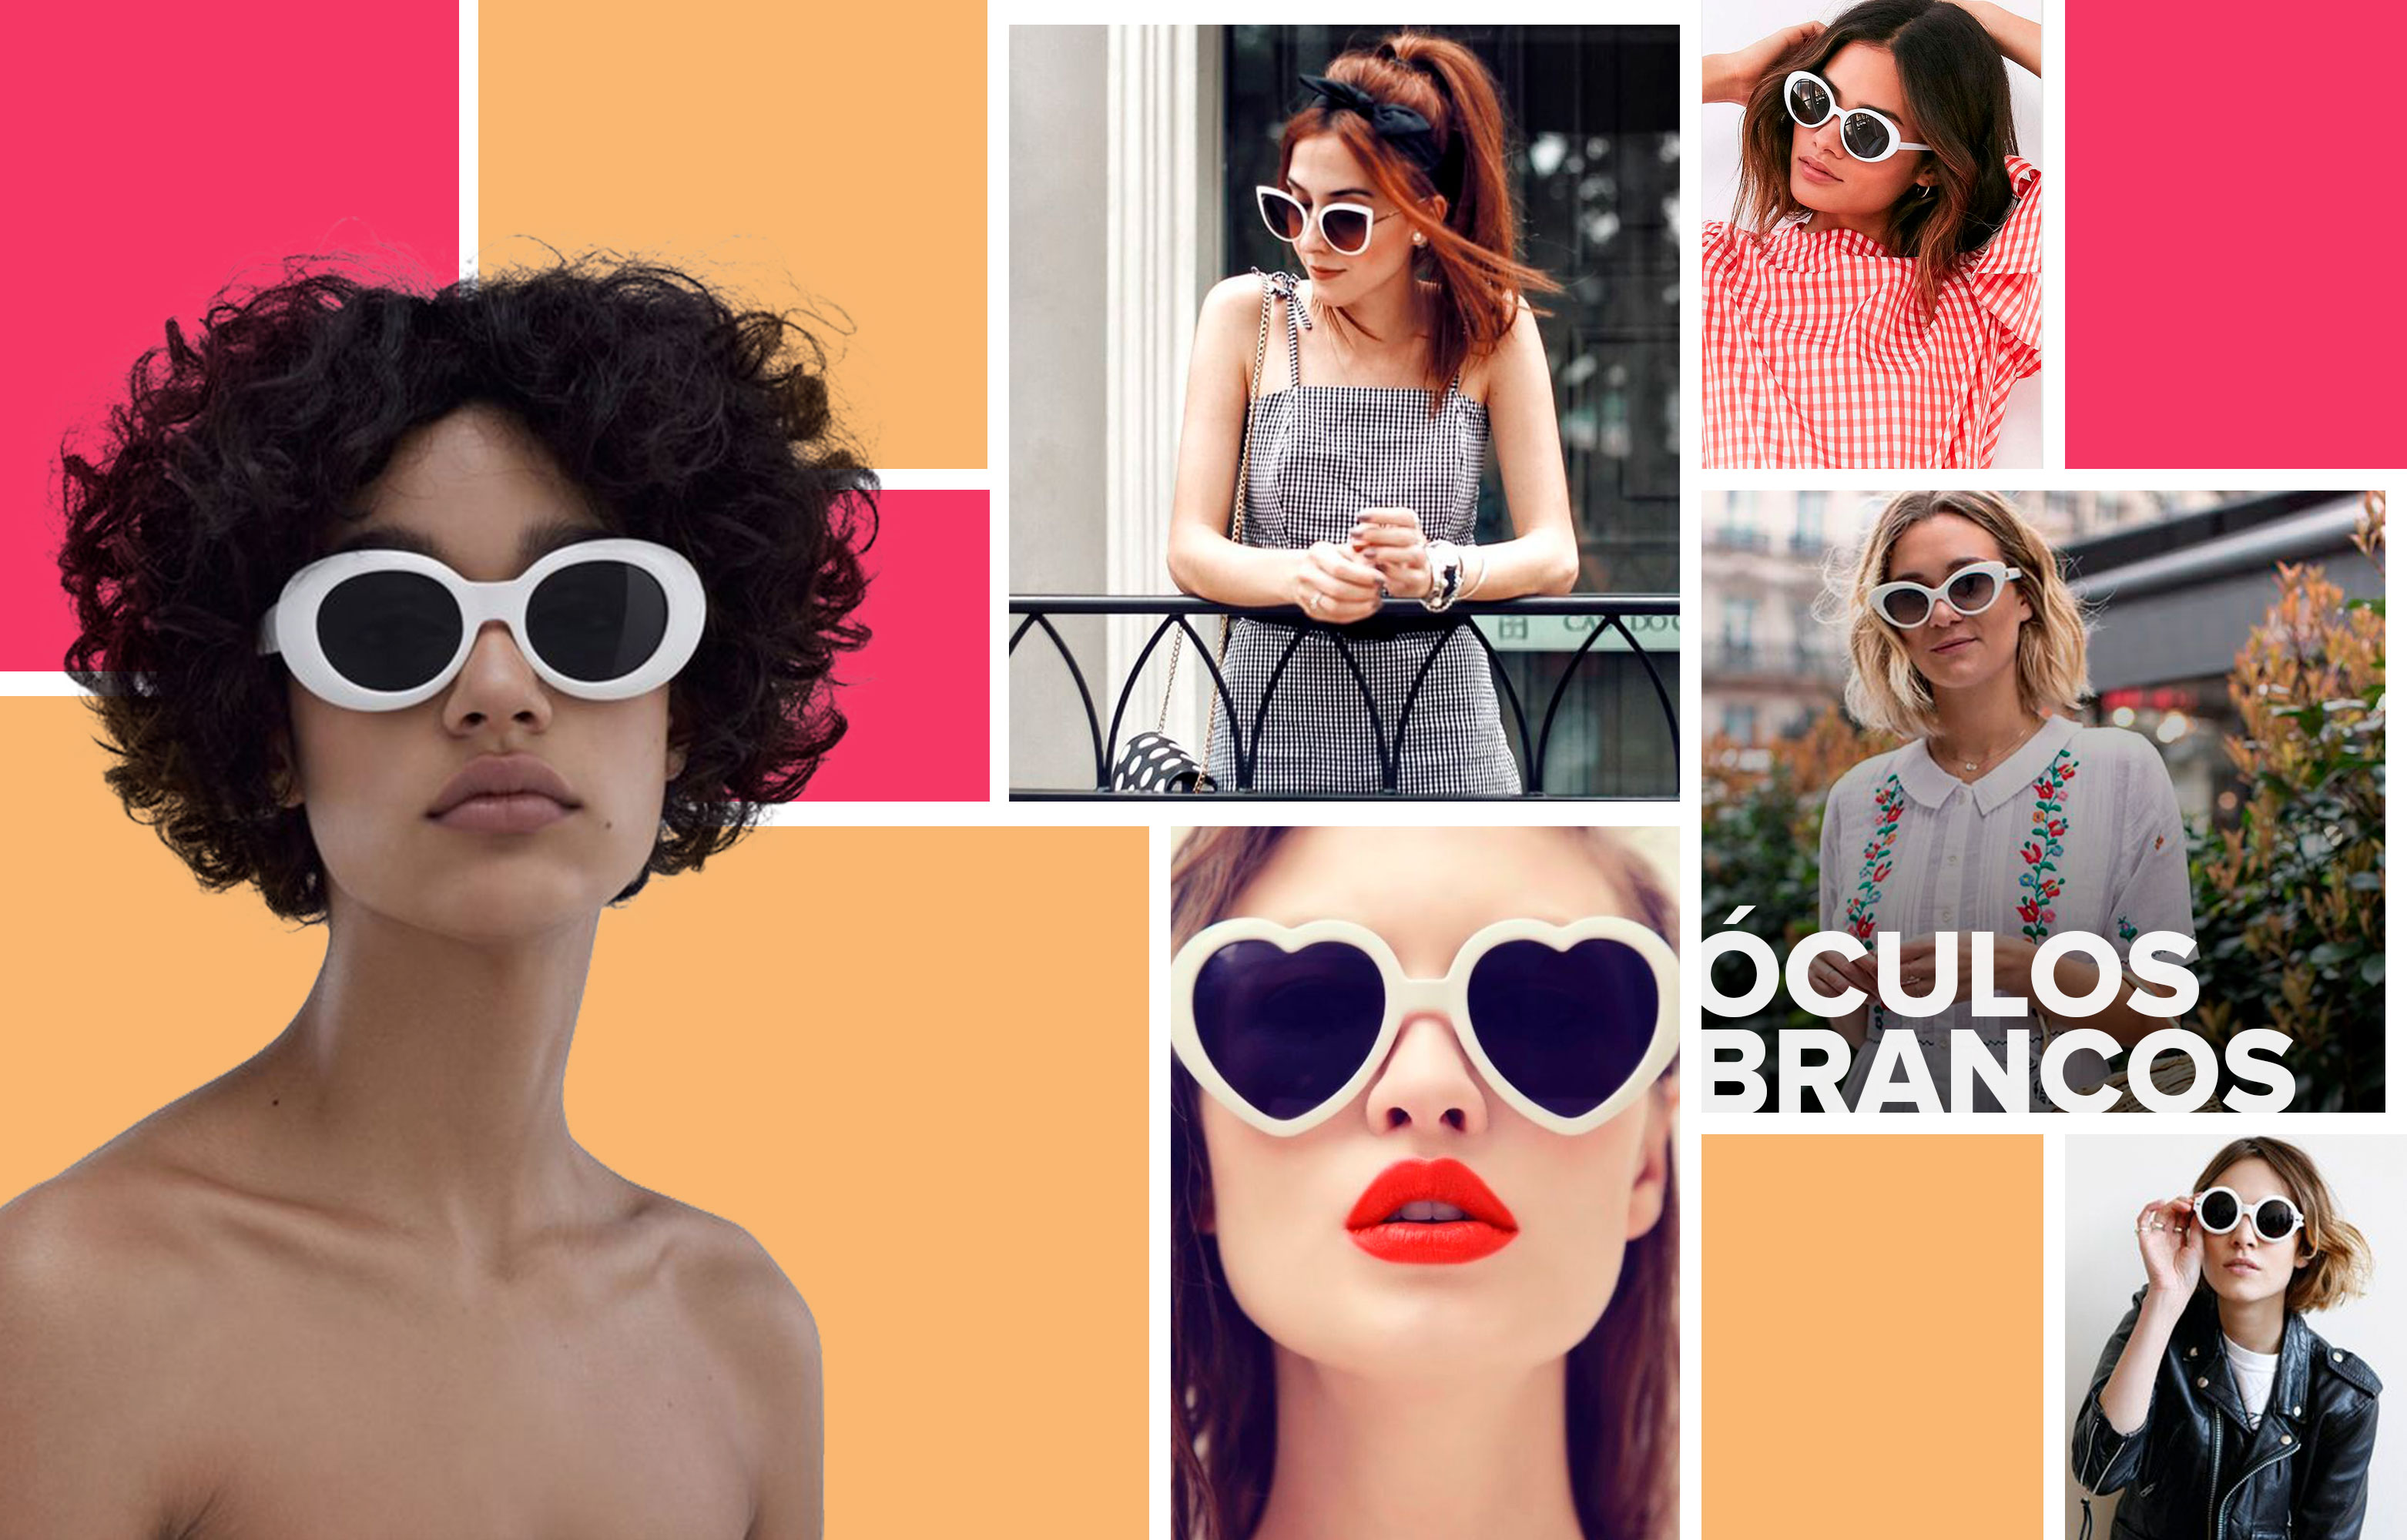 154.26_shop_all_bras_blog_1_quinzena_dez_17_oculos